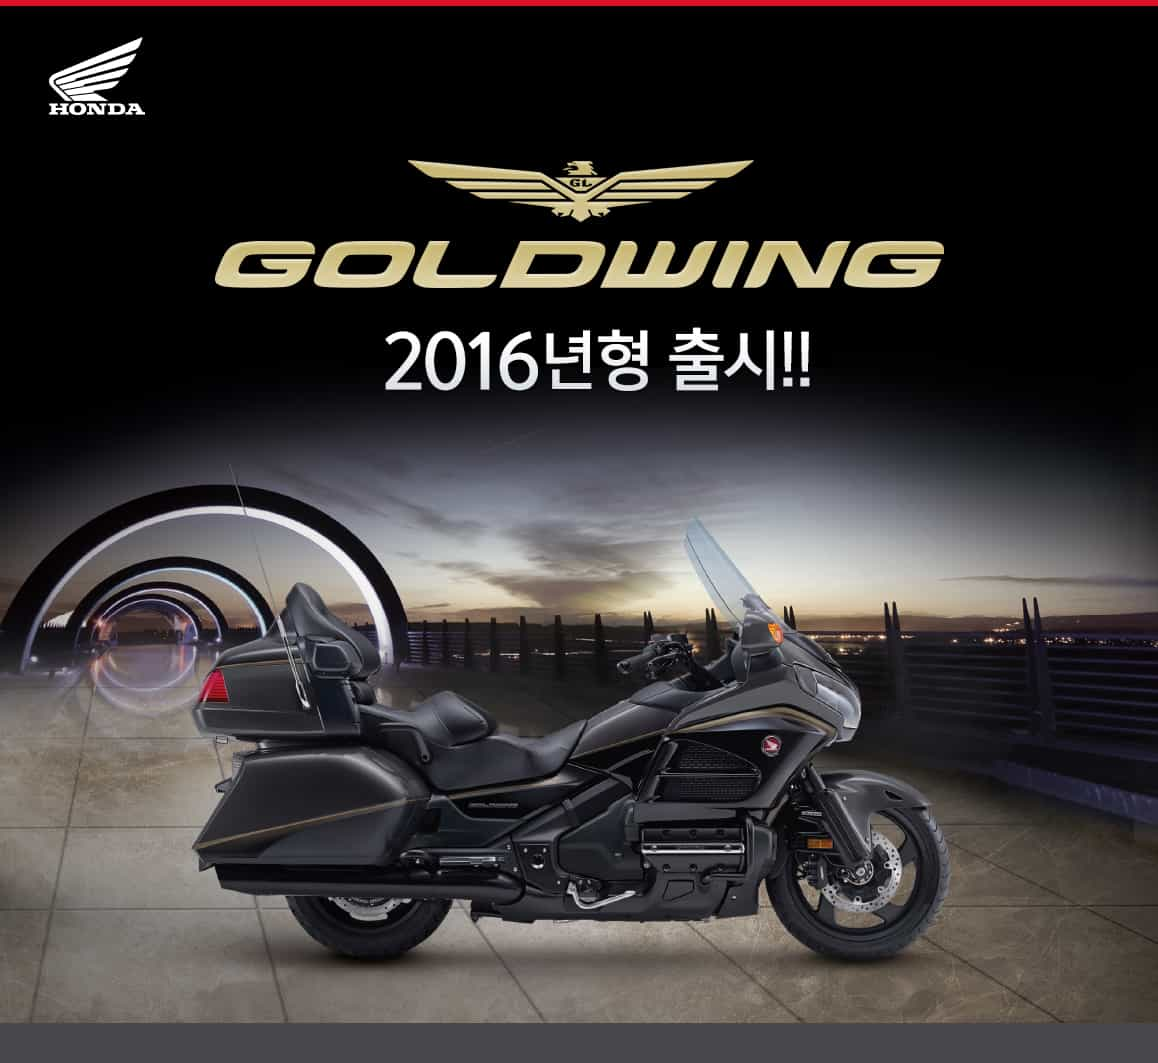 goldwing_01.jpg